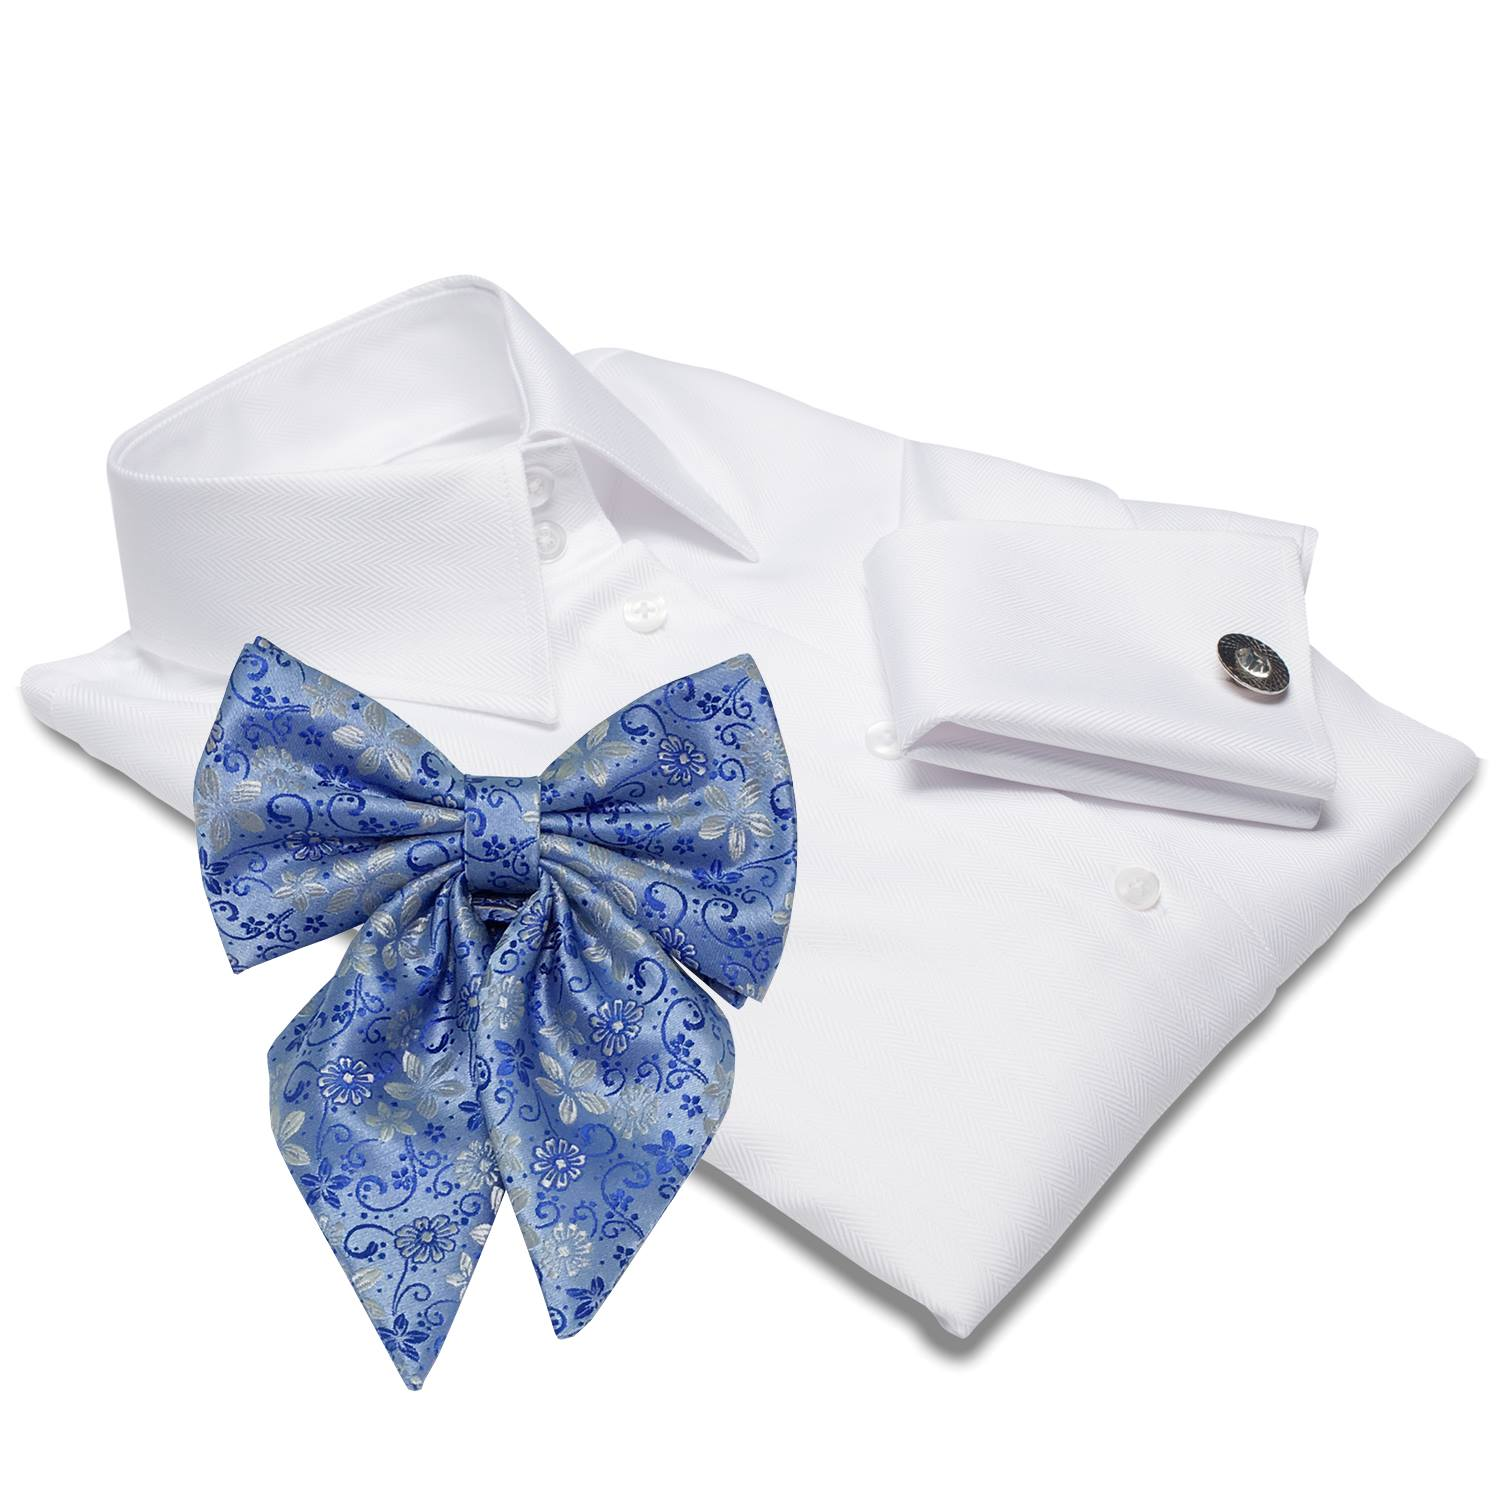 PARIS white dress shirt + BOW TIE + CUFFLINKS